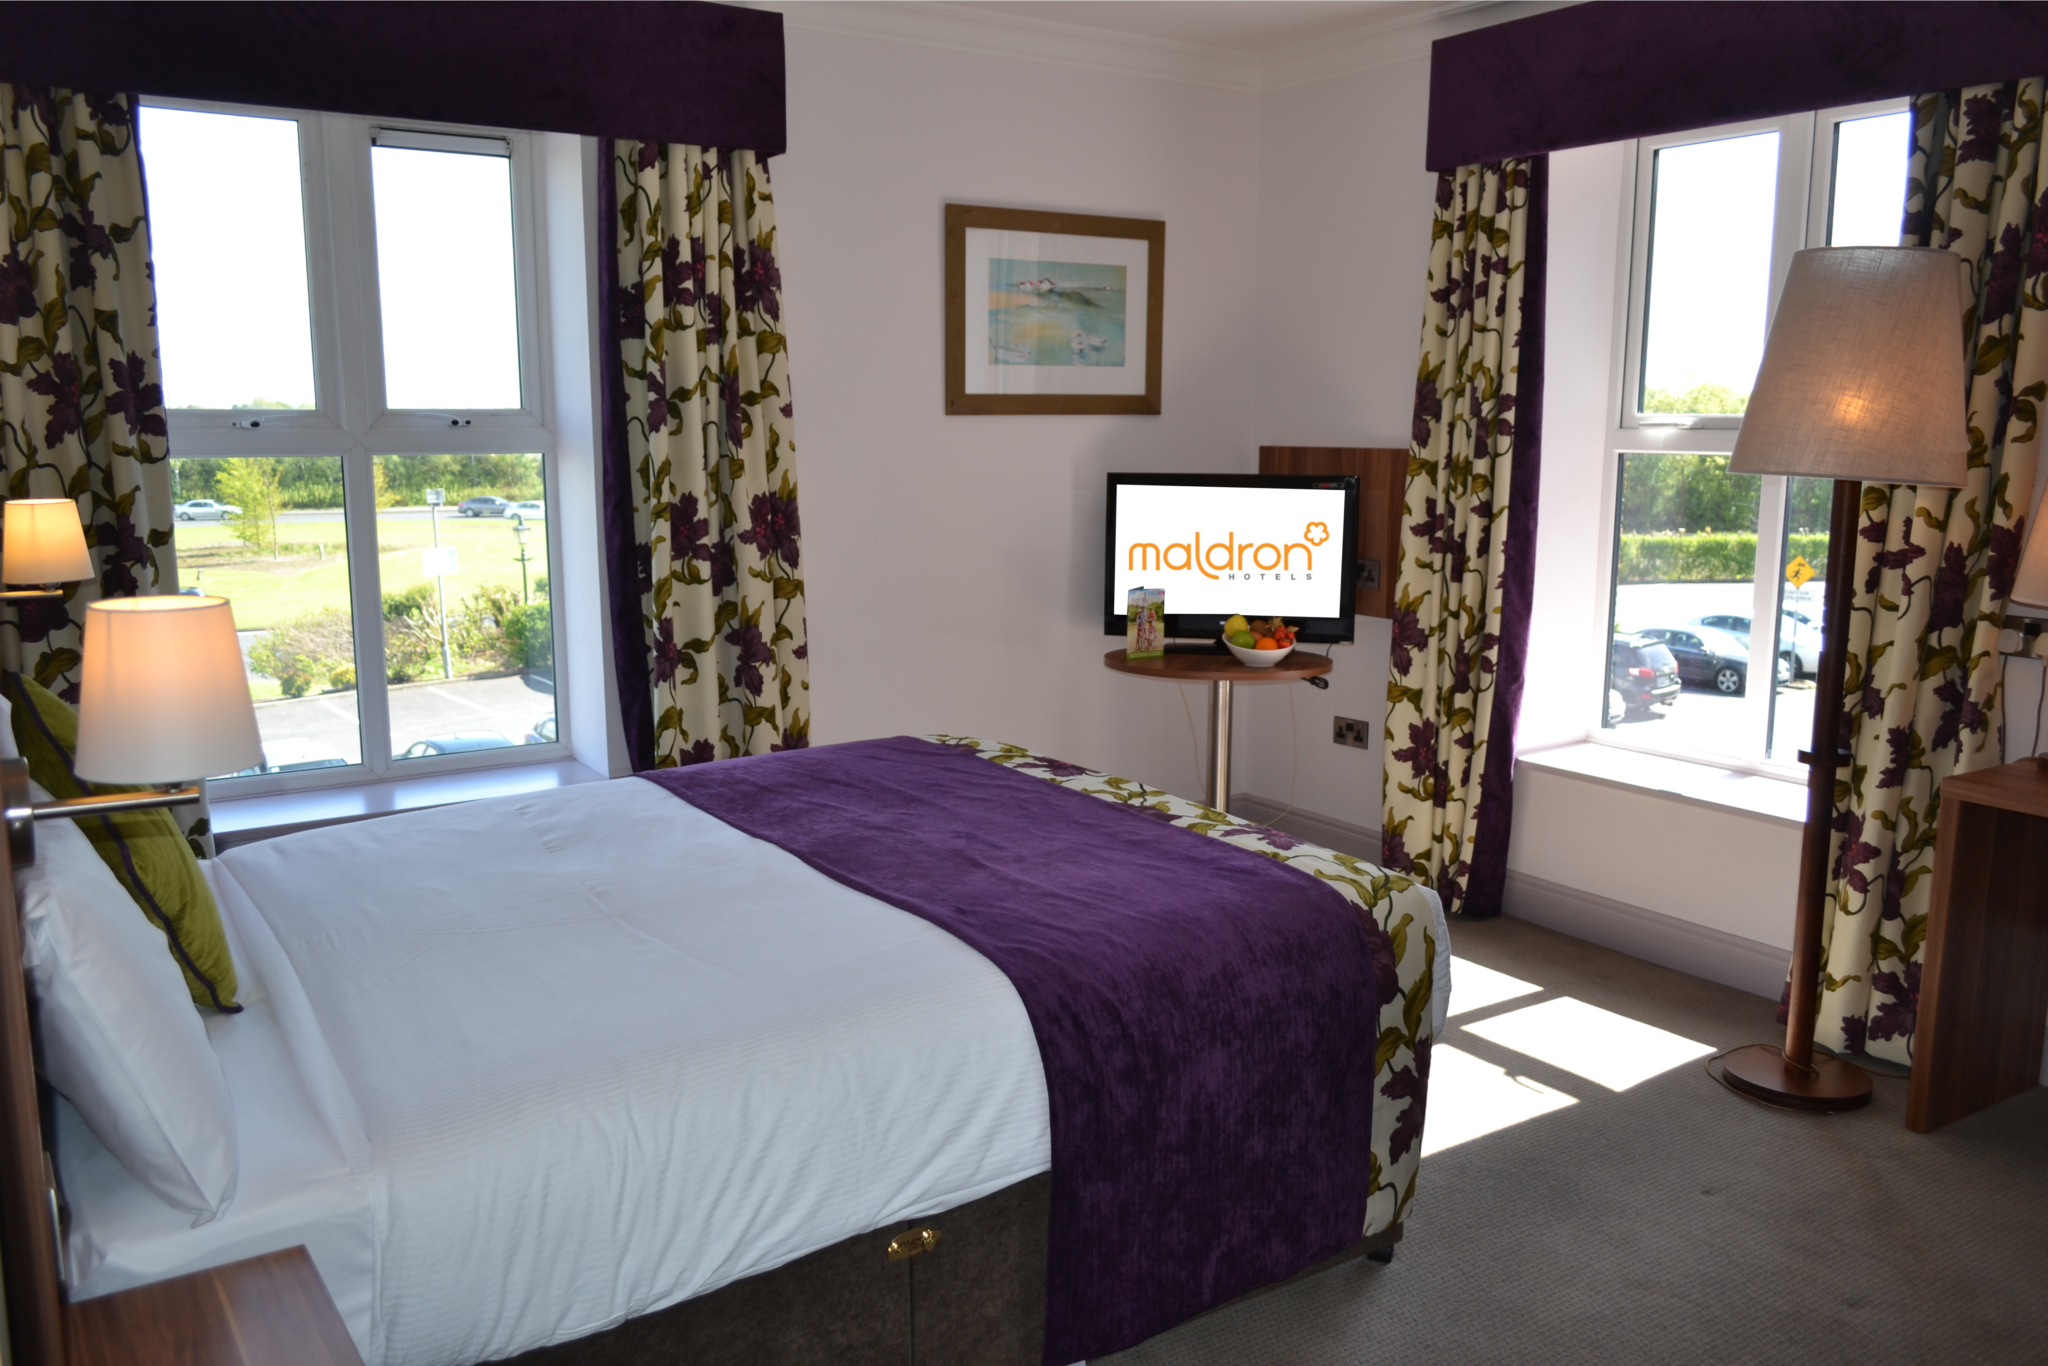 Maldron-Hotel-Oranmore-Galway-Double-Room